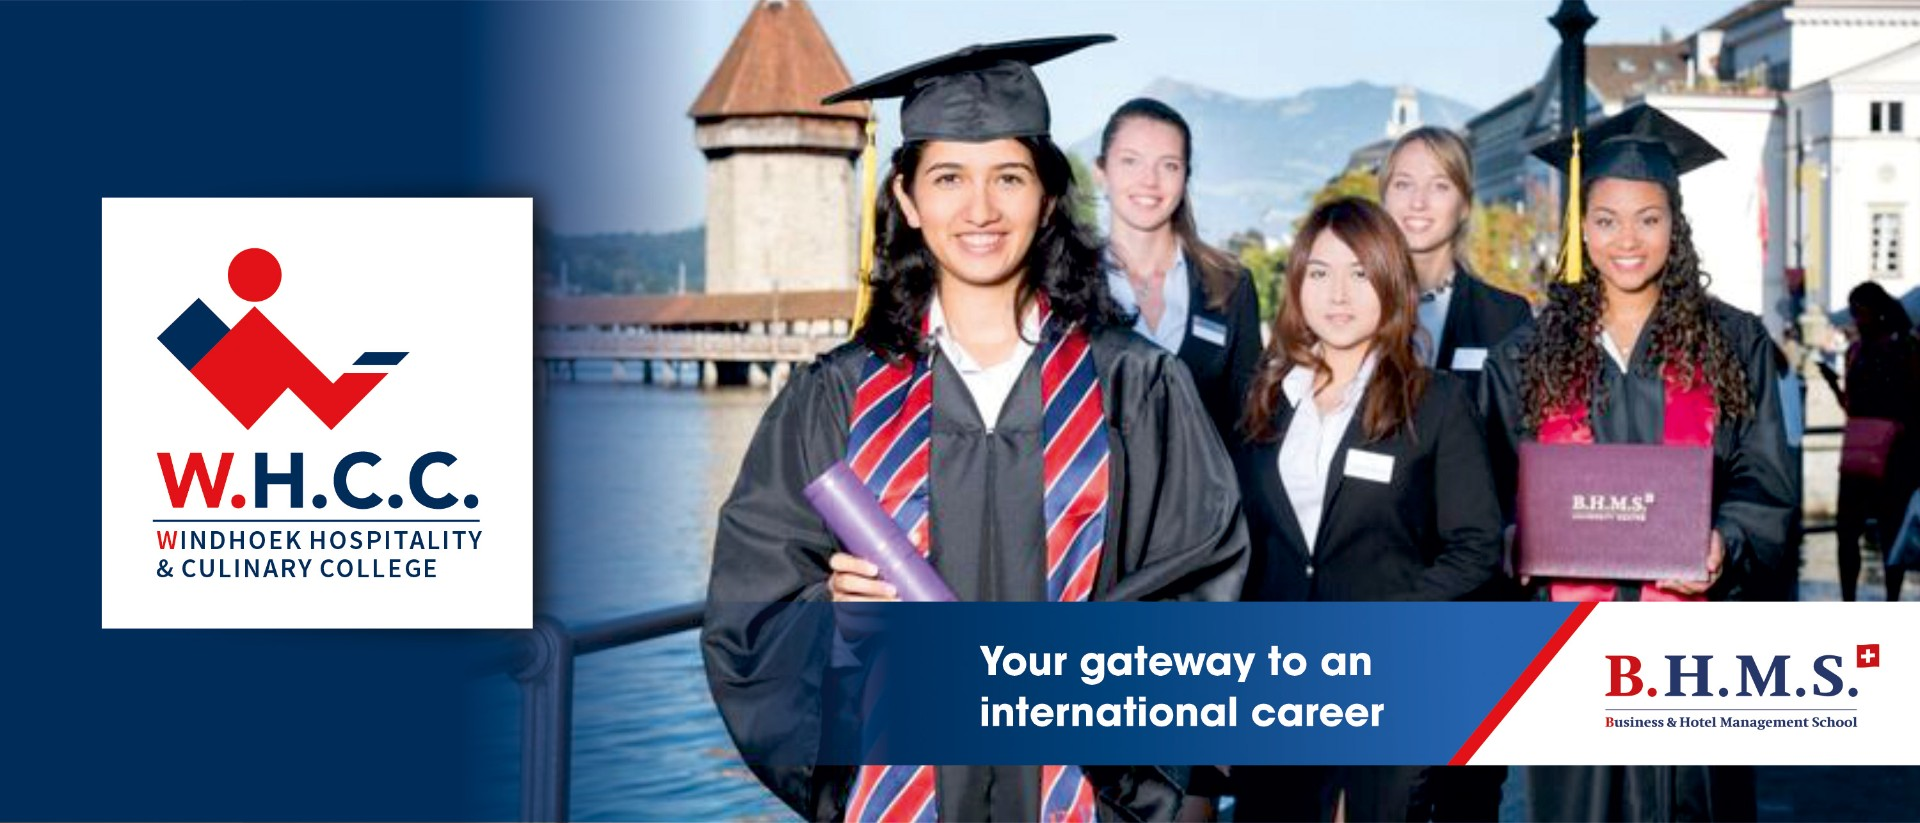 Your getaway to an international career